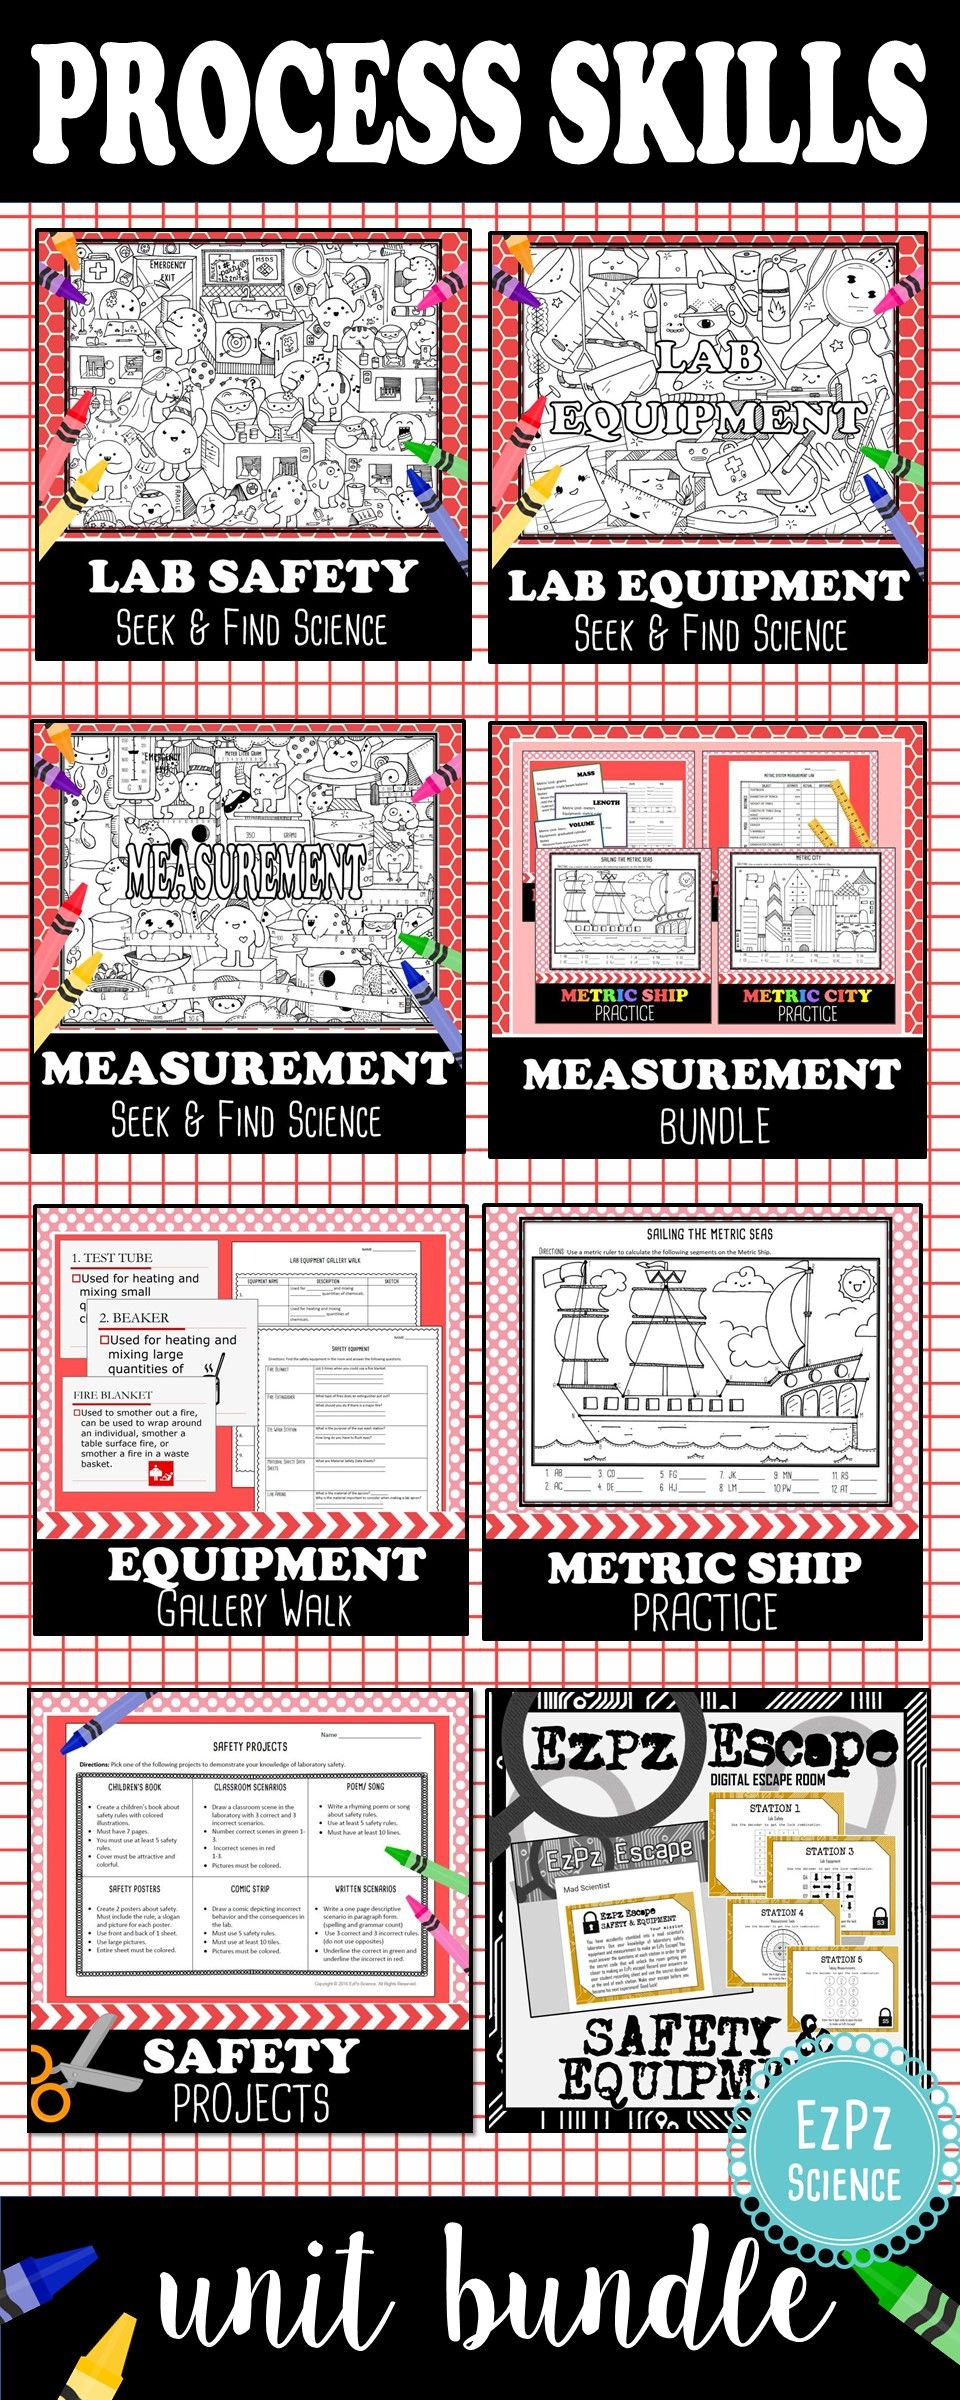 Lab Safety, Equipment and Measurement Science BIG Unit